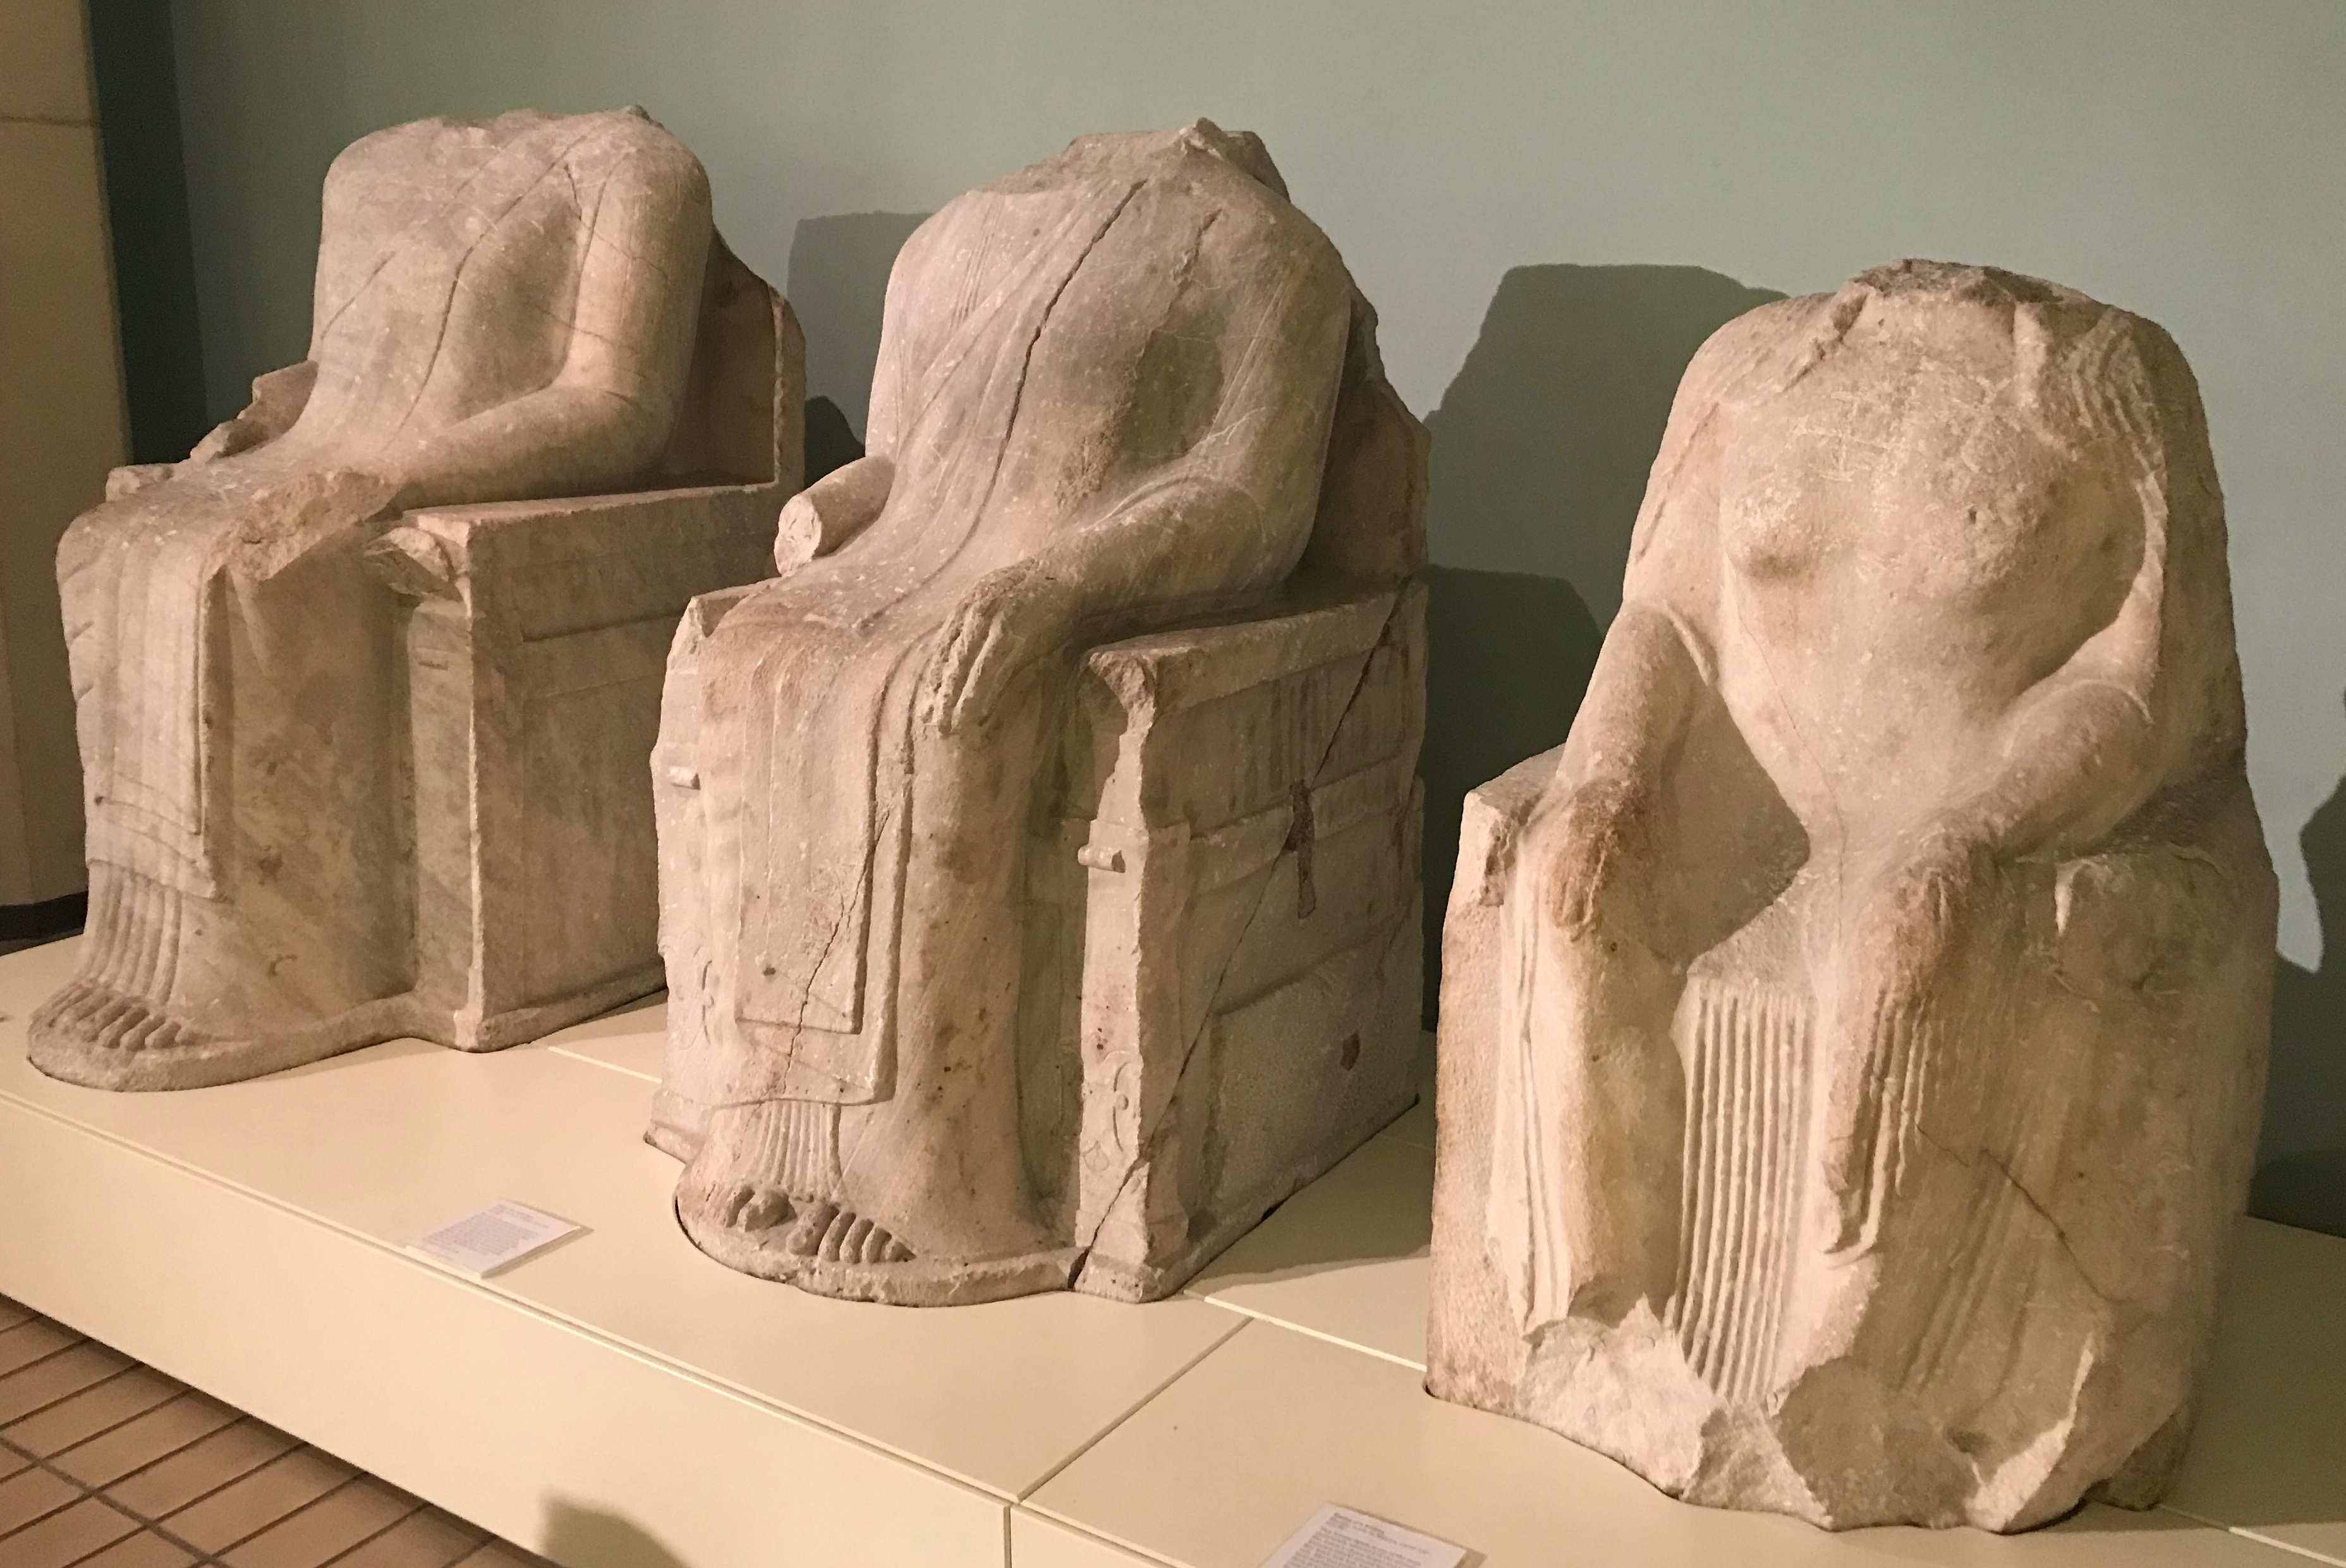 (fictional) Notes from The British Museum